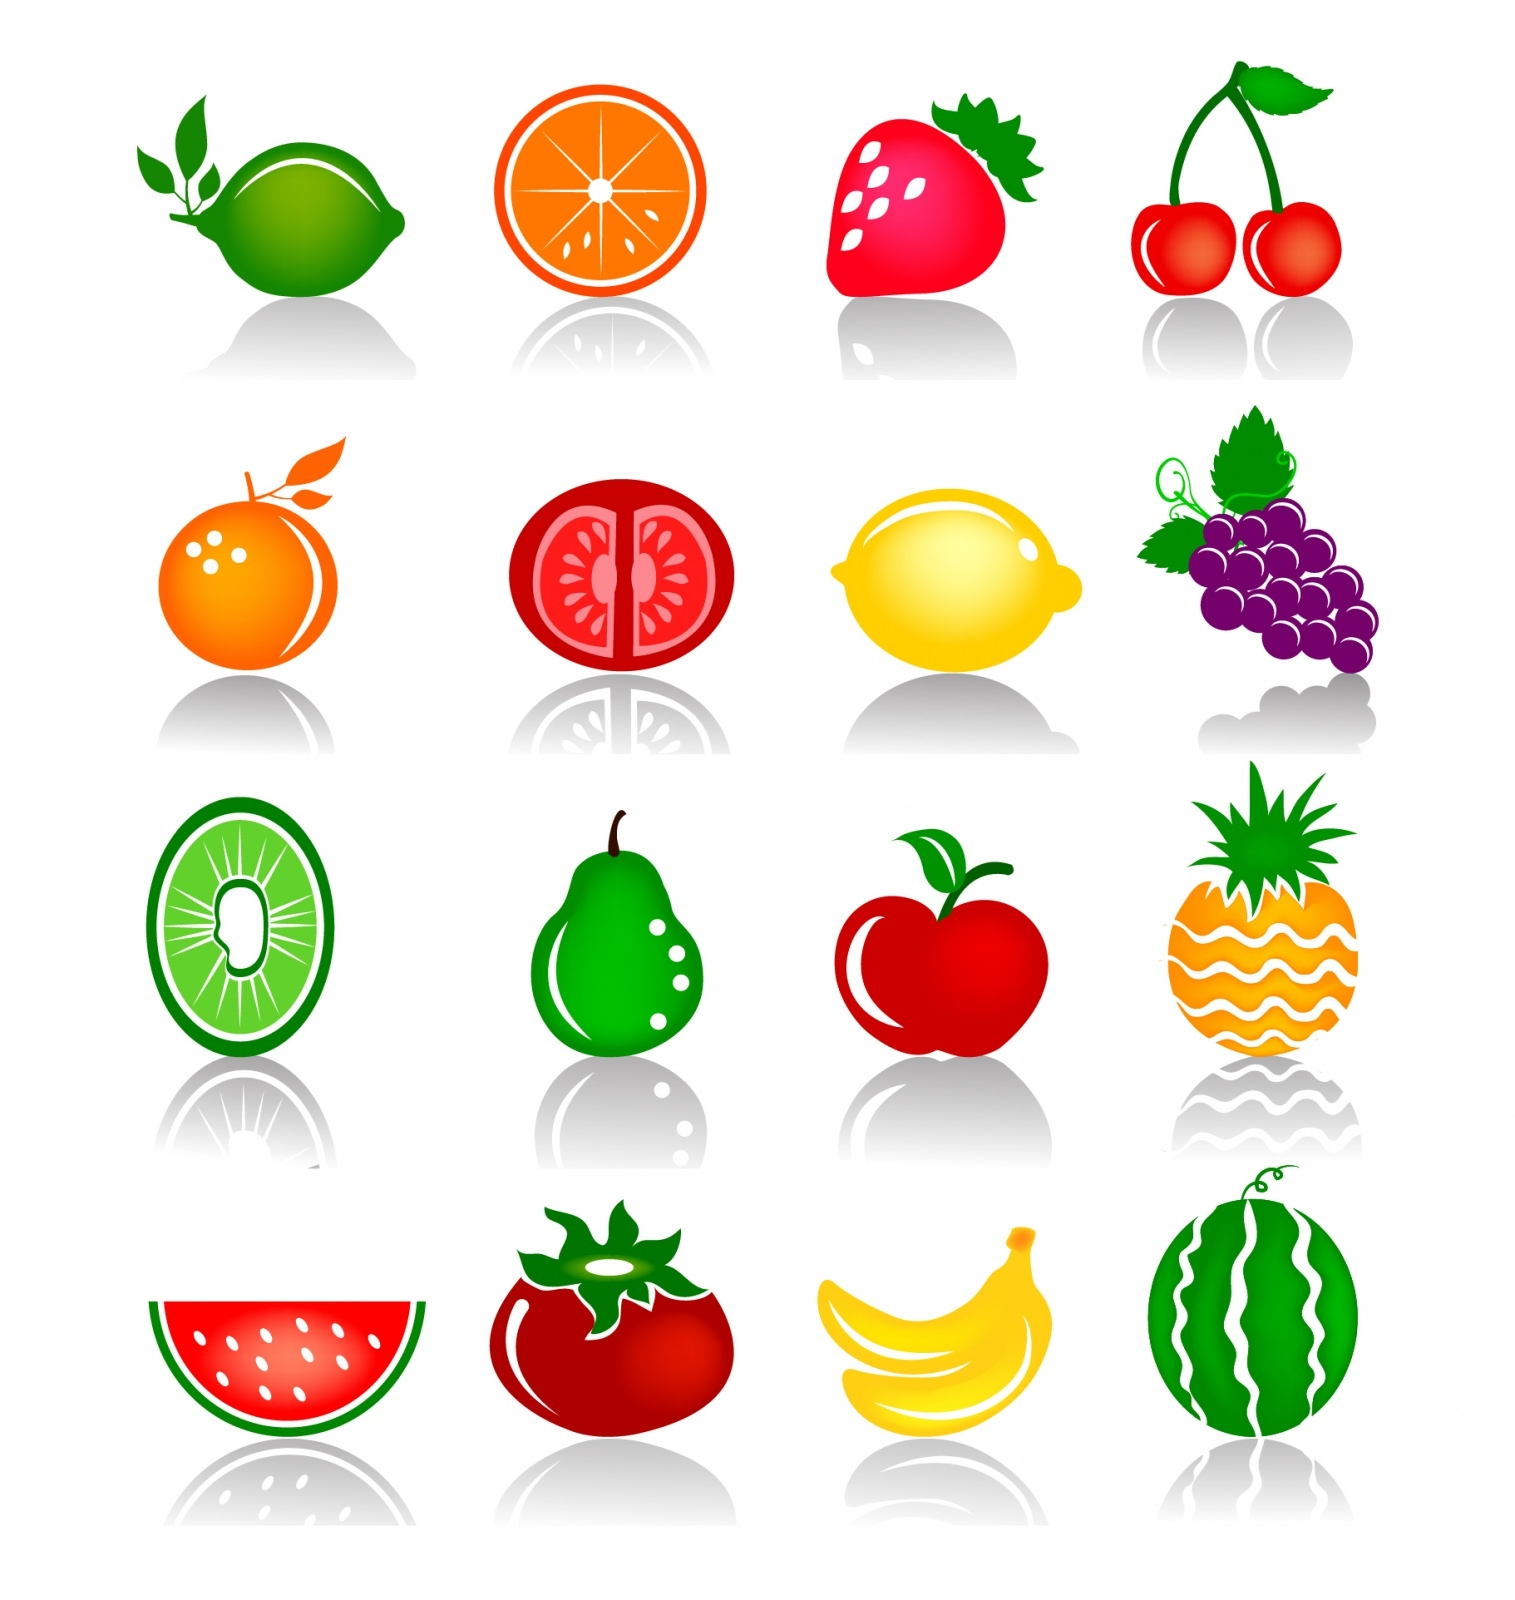 Fruits_Colorful_Icons